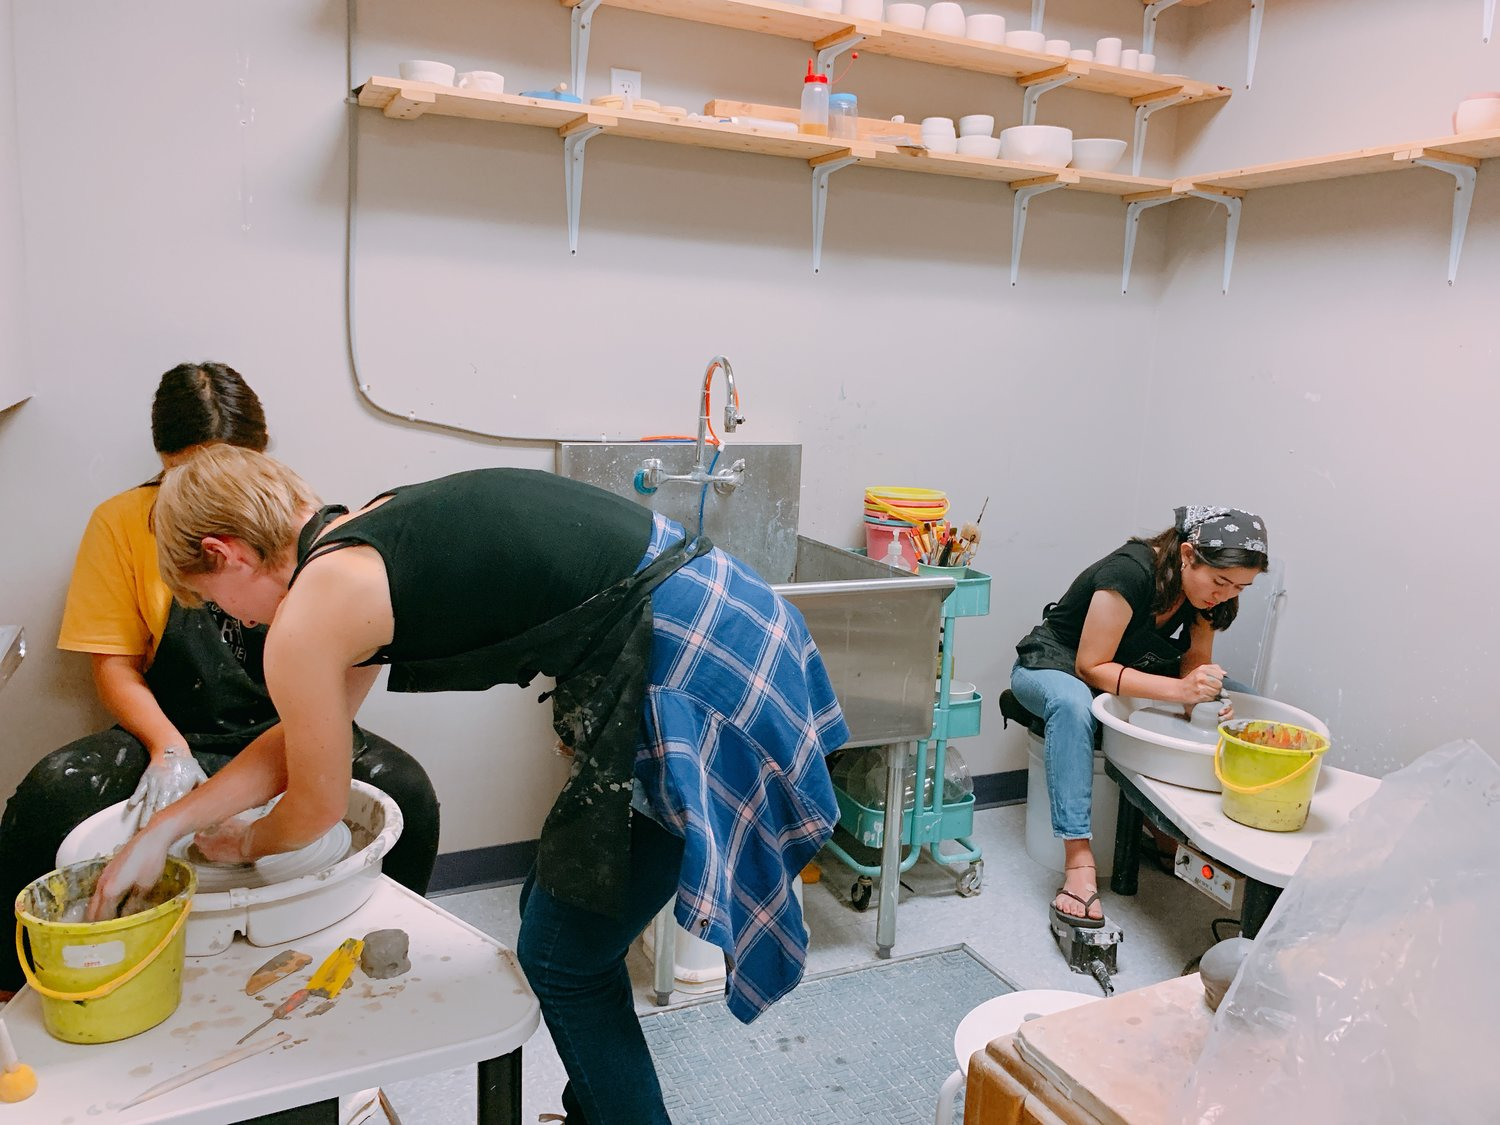 CERAMICS CLASS - Students will learn the wheel throwing process, and be able to make a cup, bowl and vase by the end of the class. Students will learn how to wedge clay, center their clay on the wheel and how to pull walls into various forms.